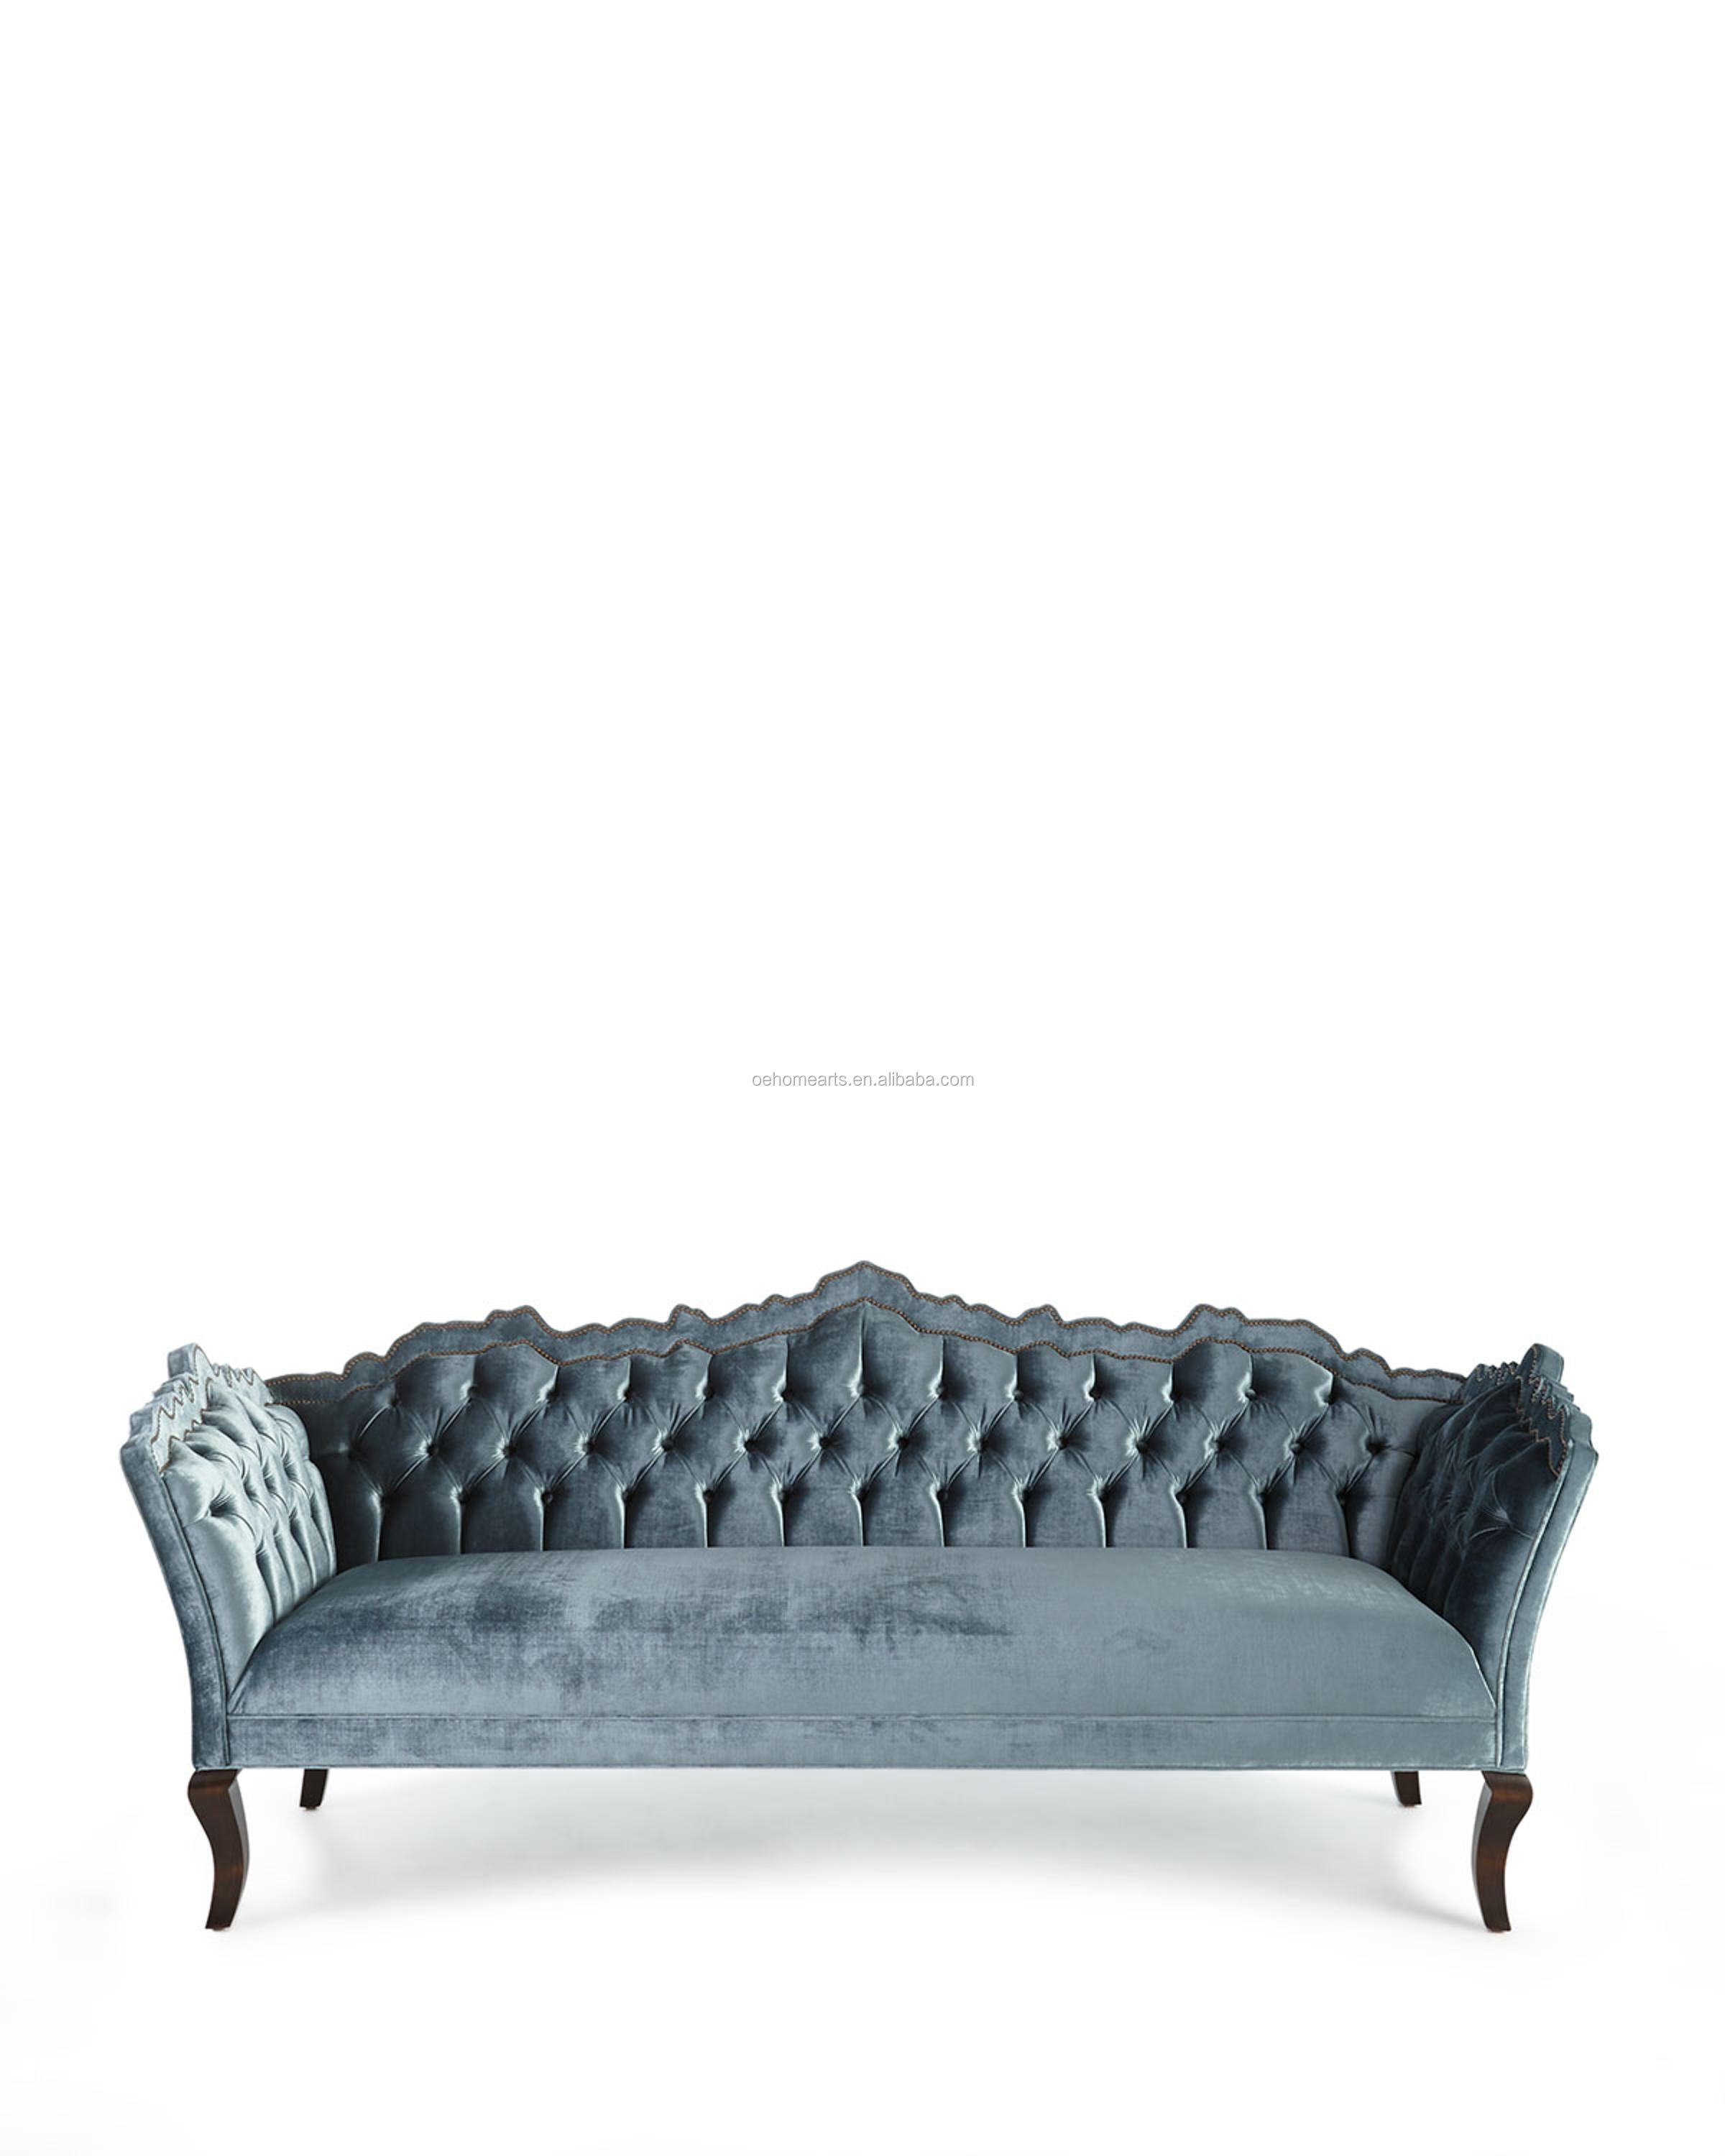 Double Sided Sofa sf00060 new hot-sale china manufacturer standard size double sided